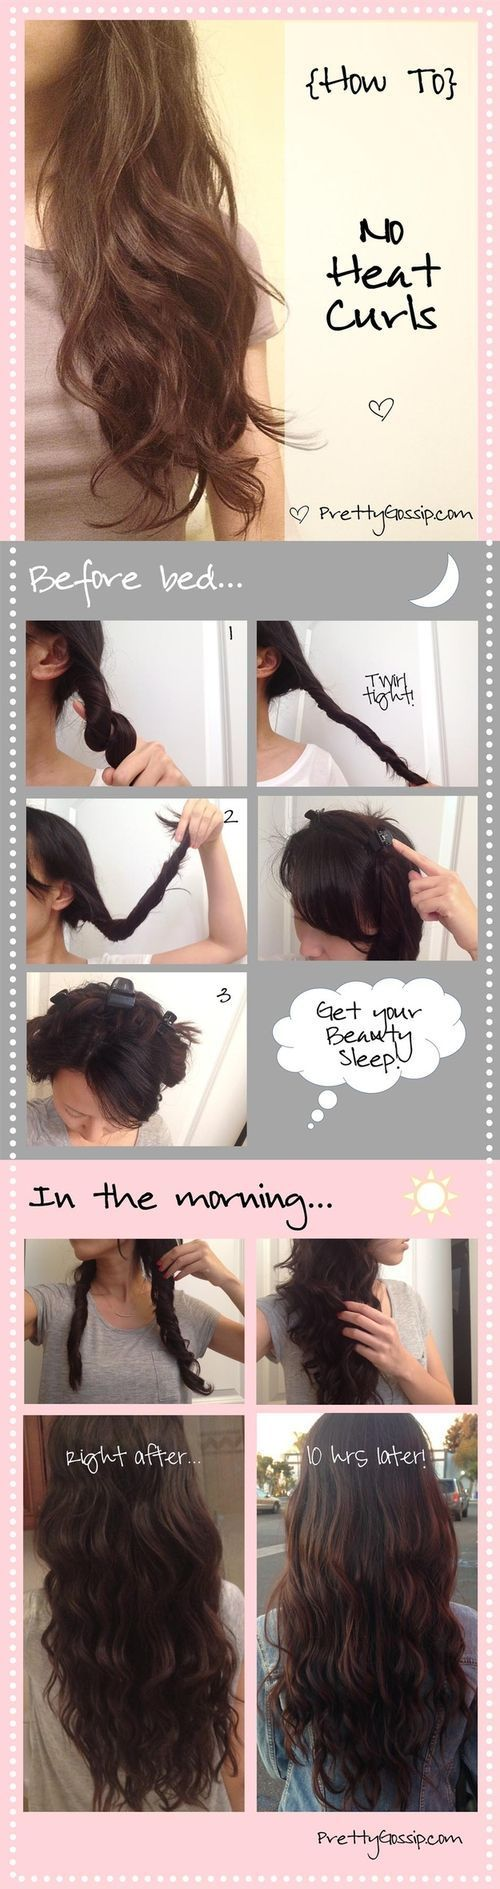 DIY No Heat Curls Hairstyle Do It Yourself Fashion Tips / DIY Fashion Projects